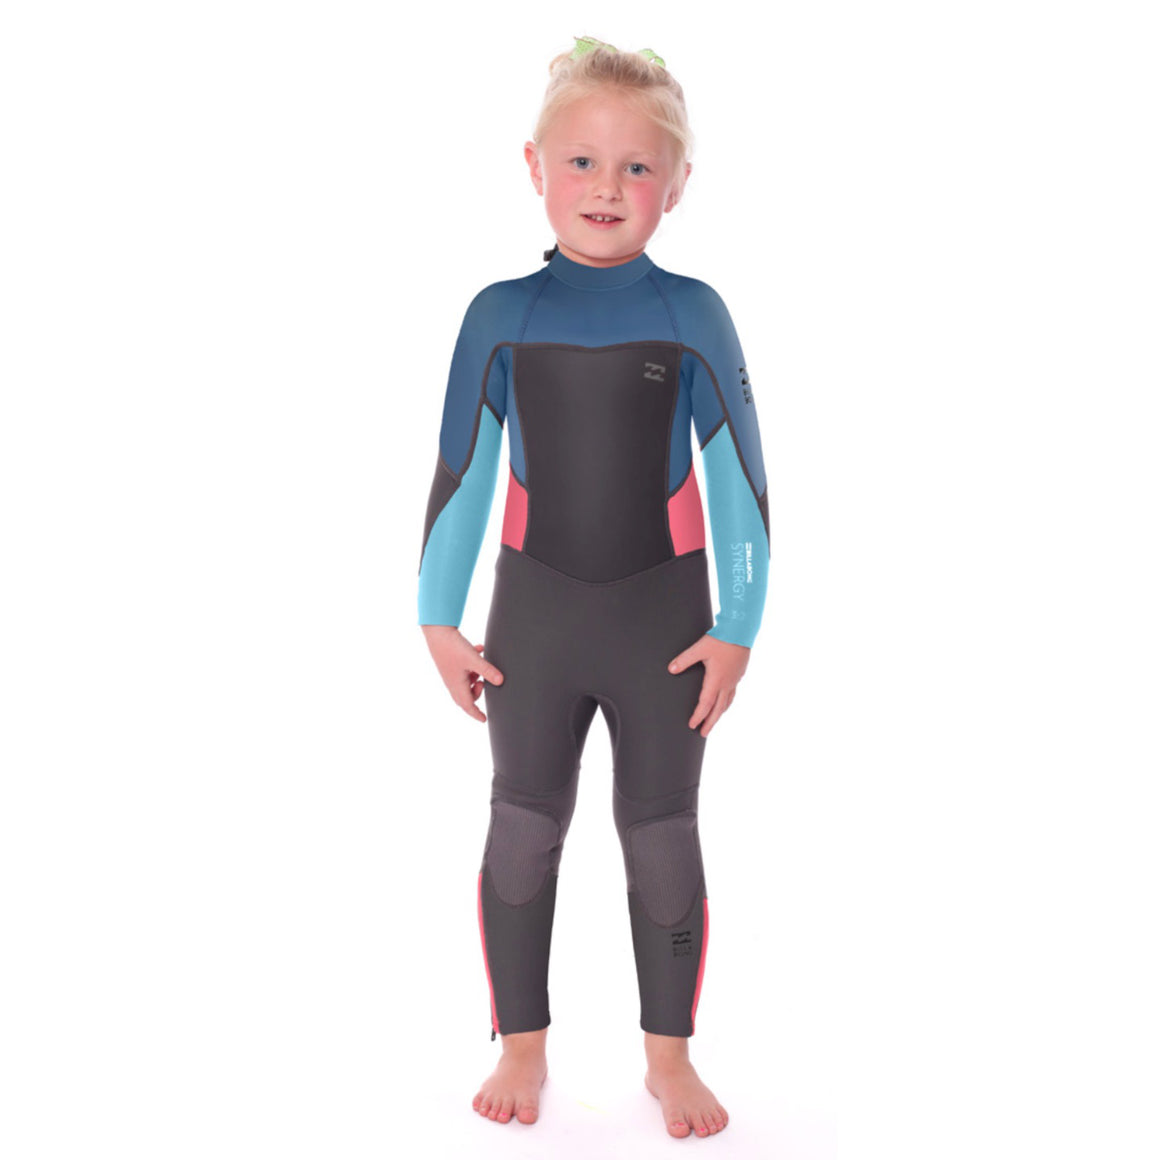 3/2 Billabong Toddler - 302 Synergy FZ Fullsuit - AGA (grey/blue/salmon) - Surf Ontario